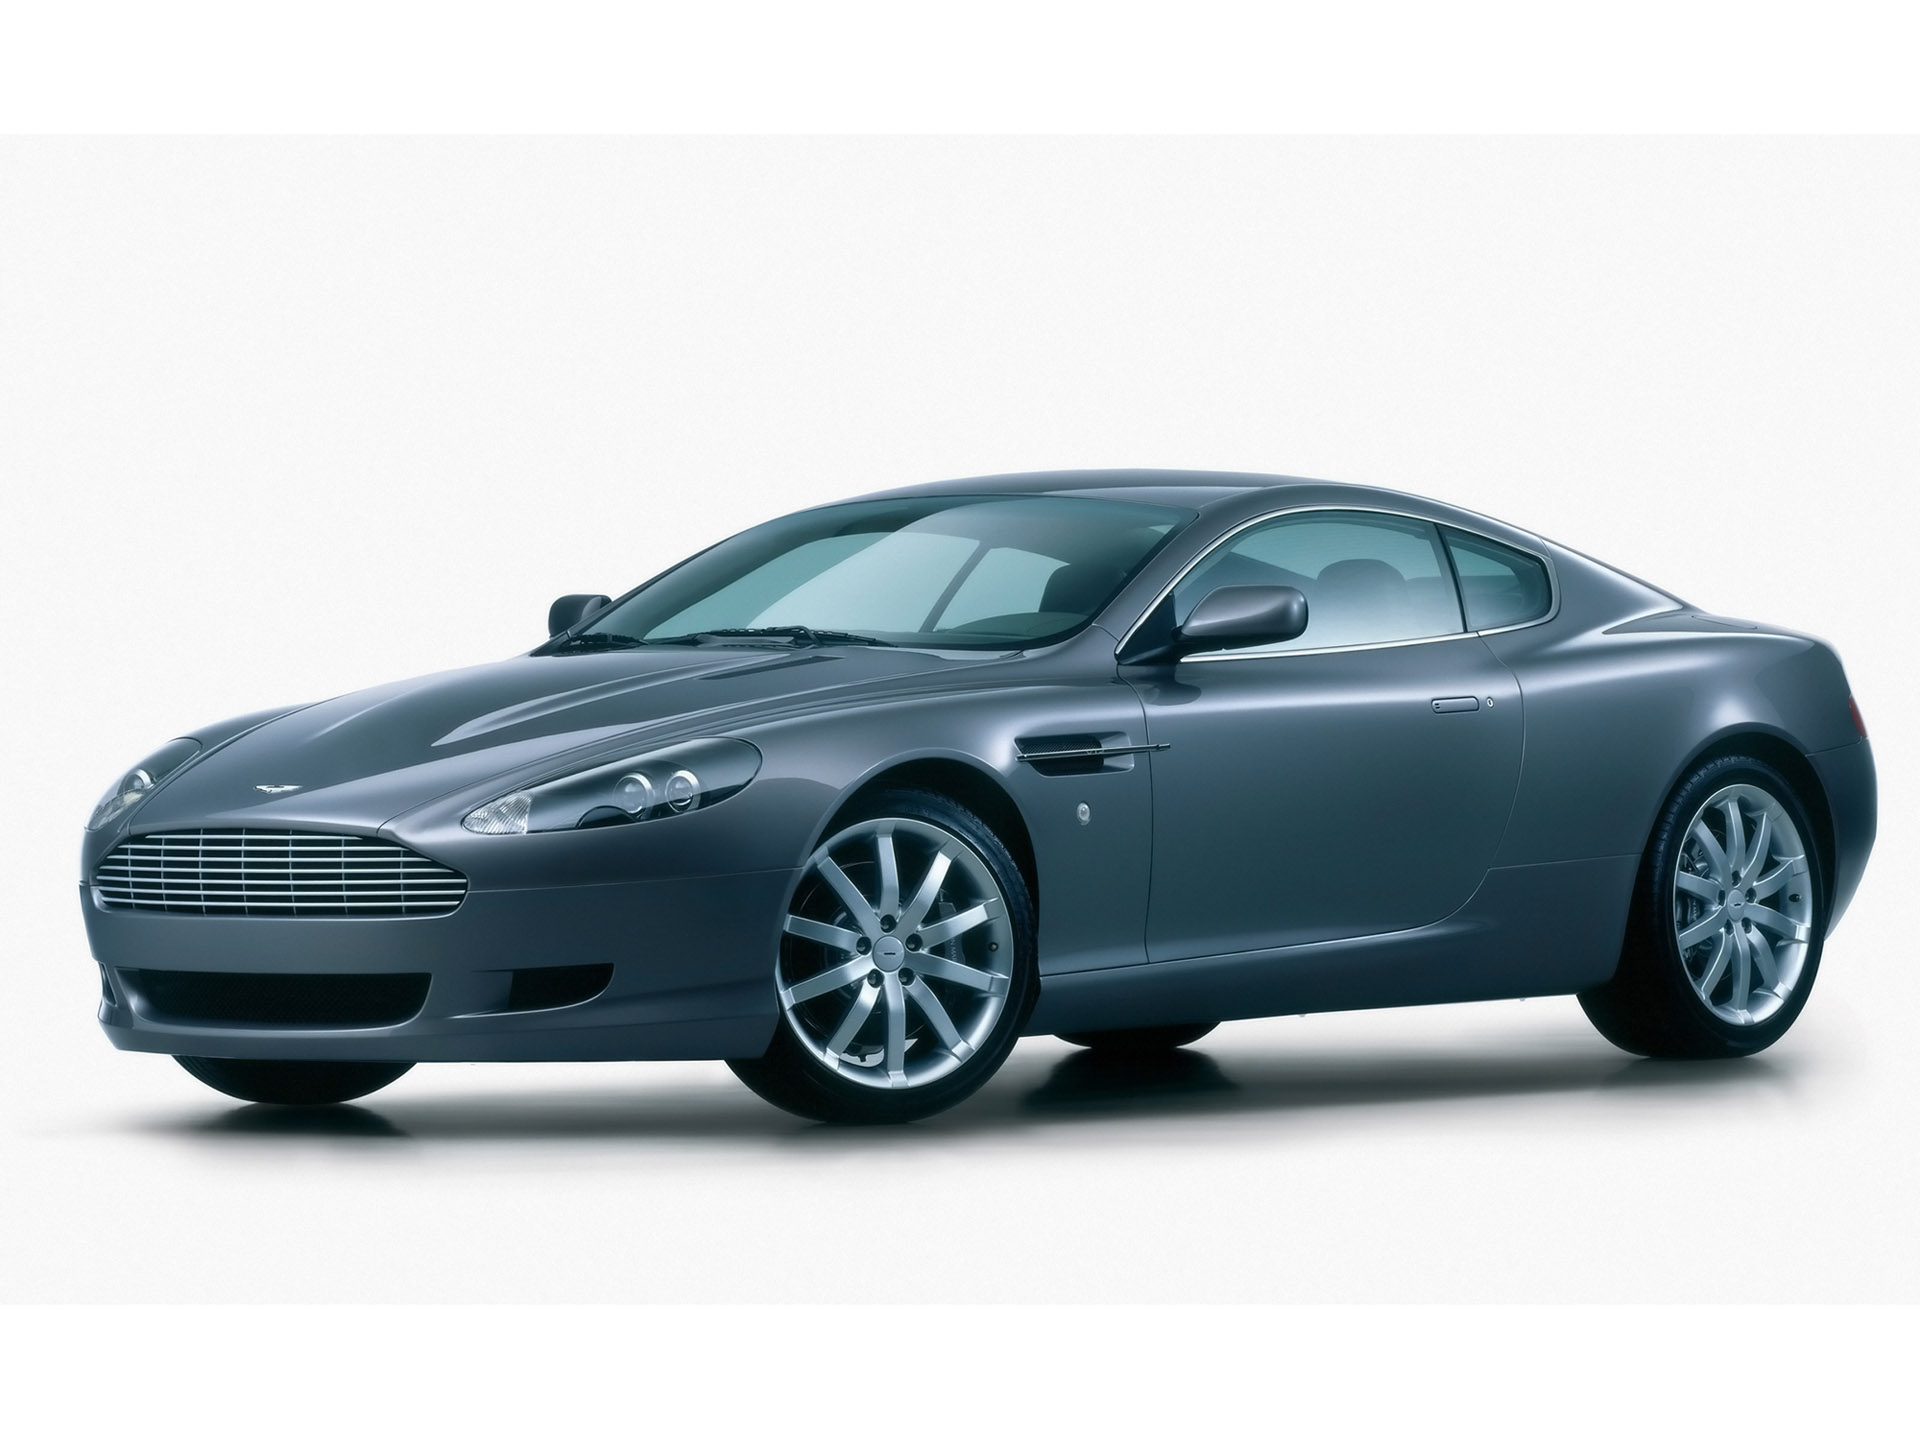 db9 - Automobile Wallpapers, in HD | Iphone | Android| Desktop 13